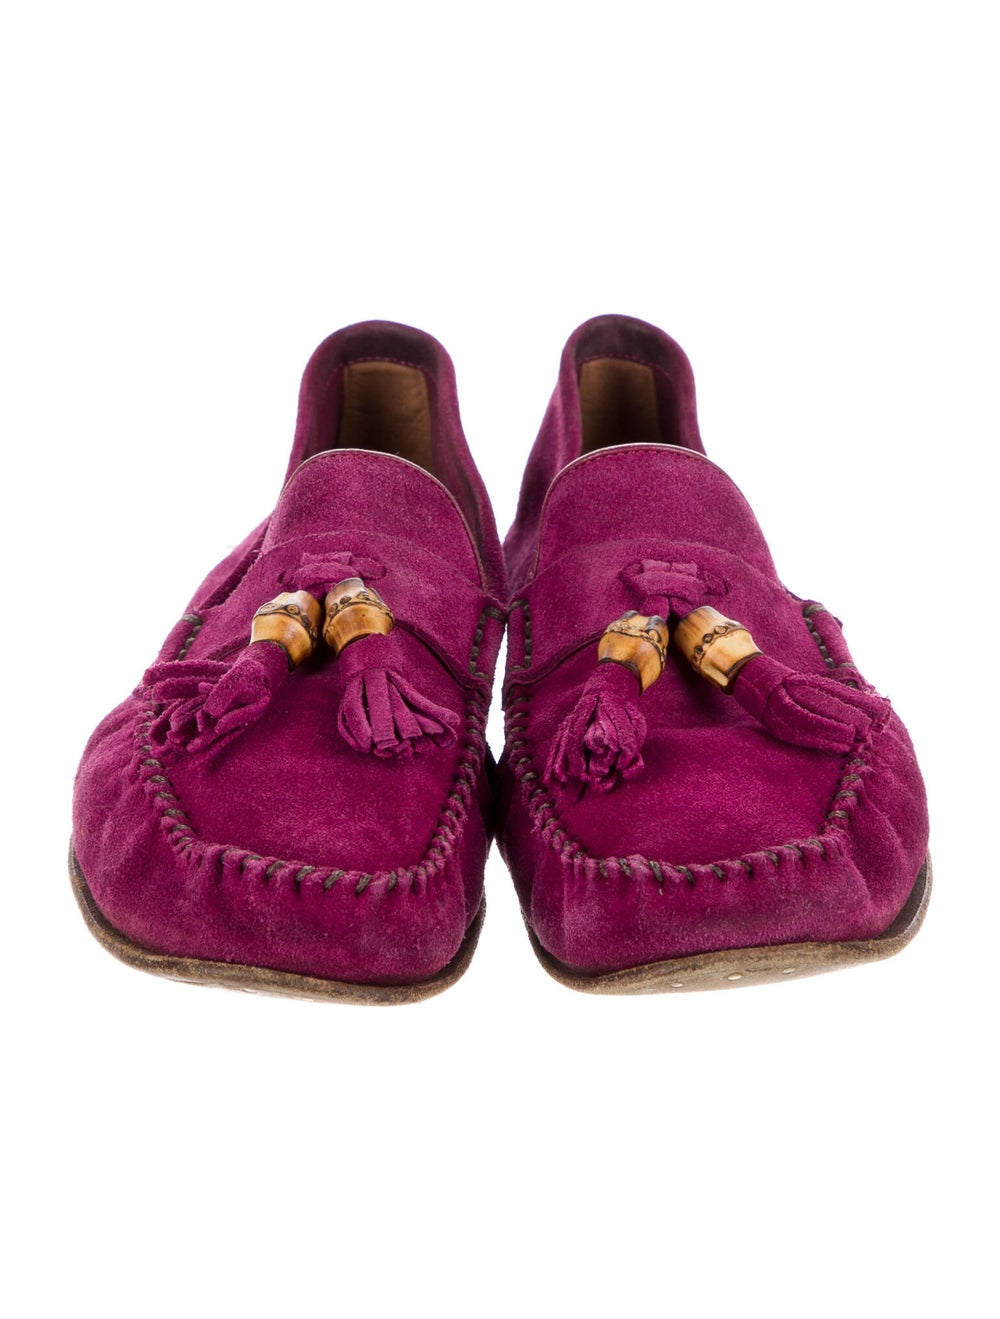 Gucci Suede Tassel Accents Loafers Purple - image 3